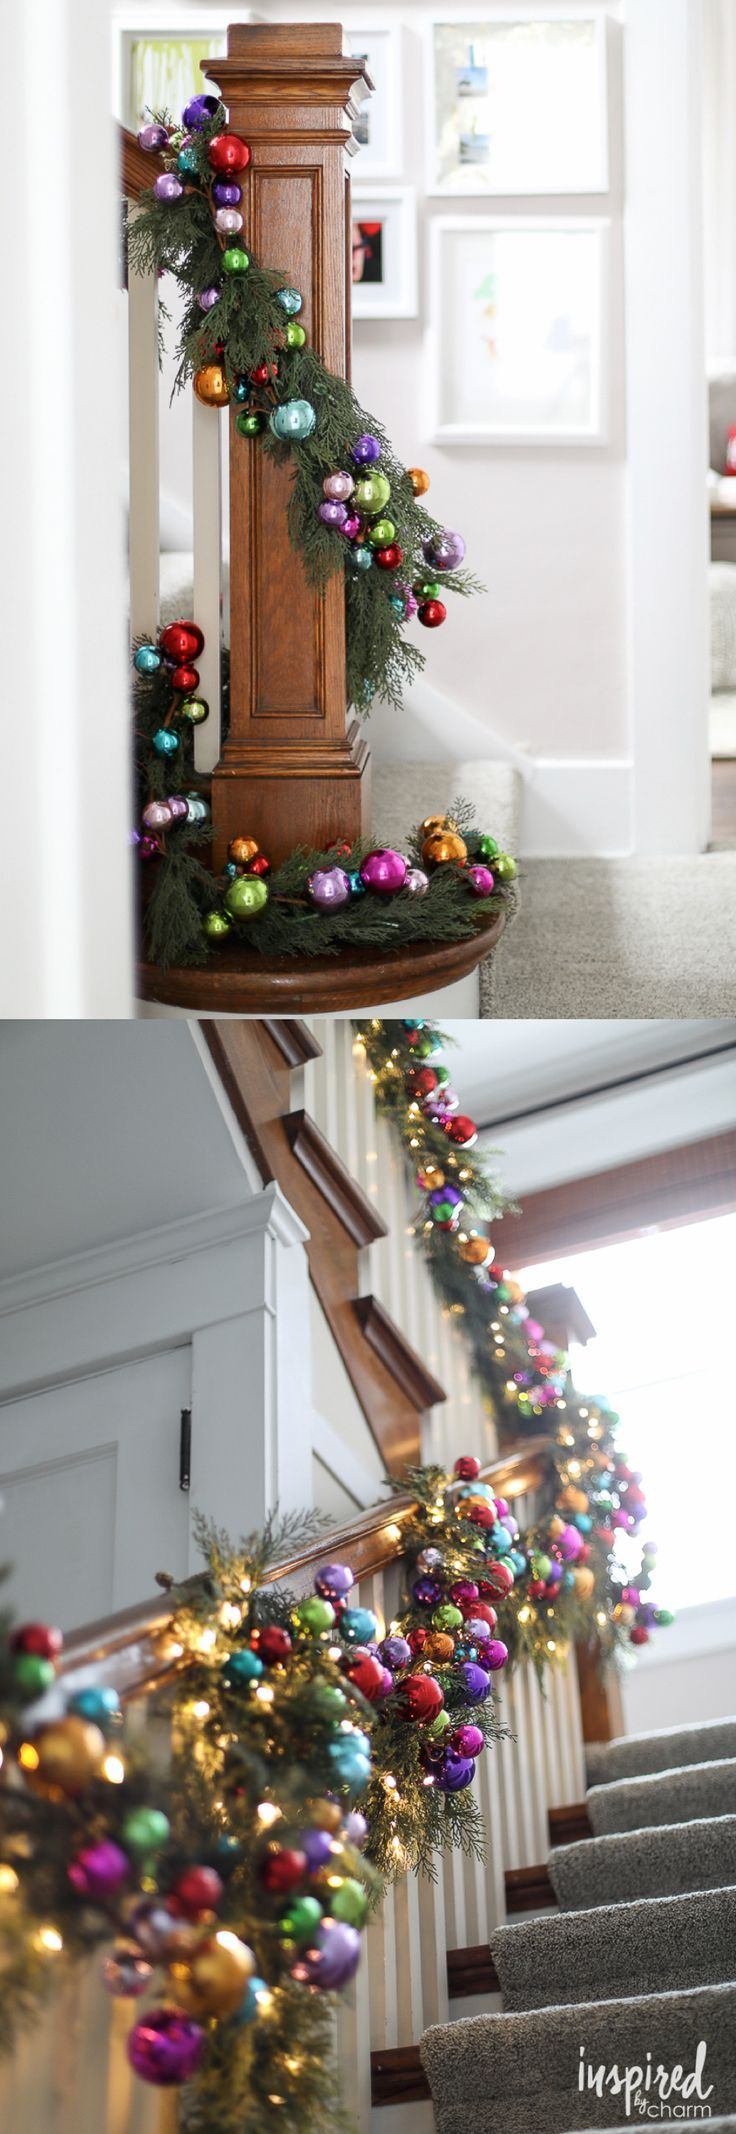 Colorful Christmas Ornament and Pine Banister Garland